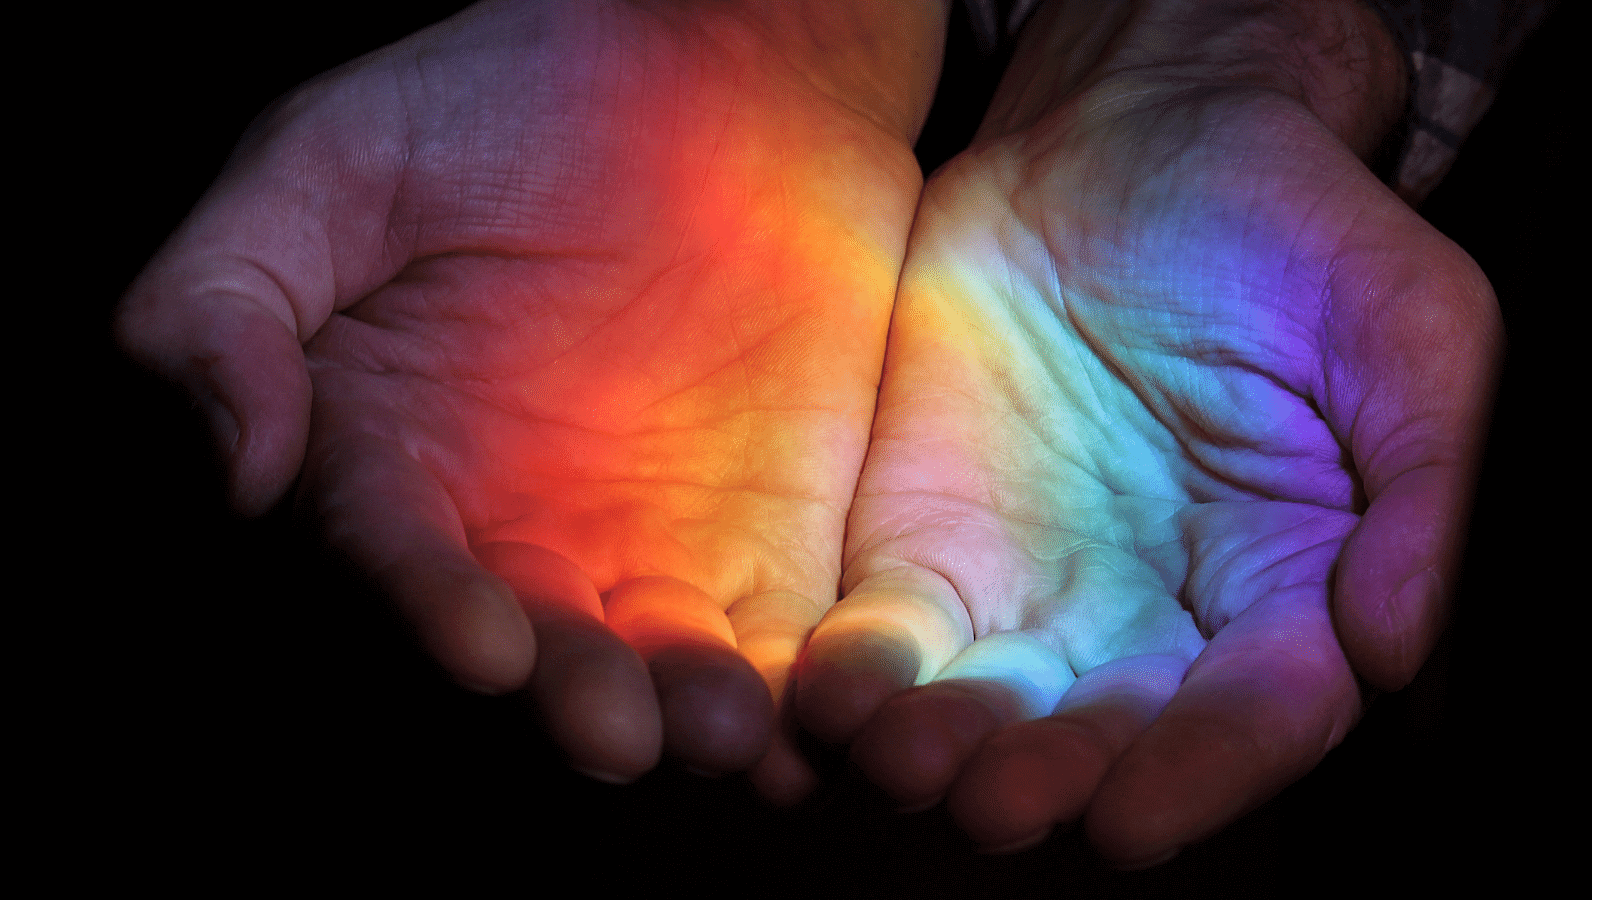 Kindness Advent Calendar: Hands Held with Rainbow Reflecting on Palms